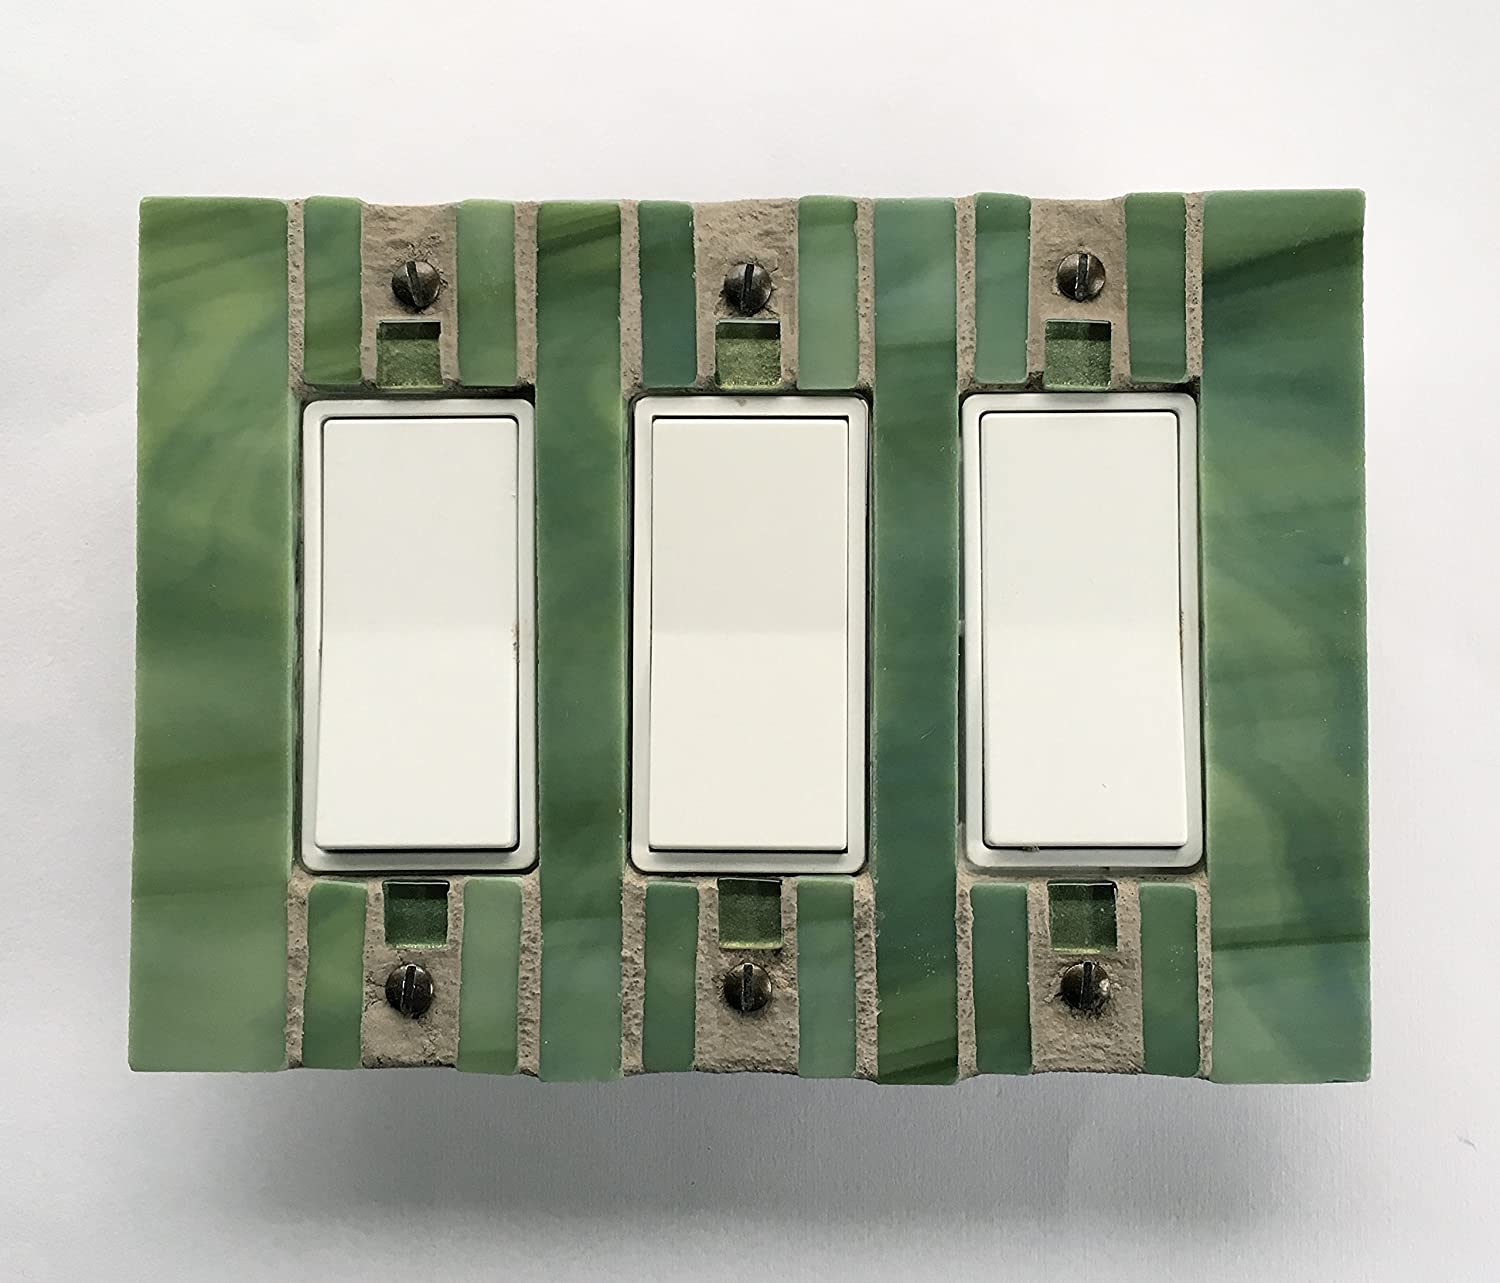 Amazon com: Decora Light Switch Cover, Green Switch Plate